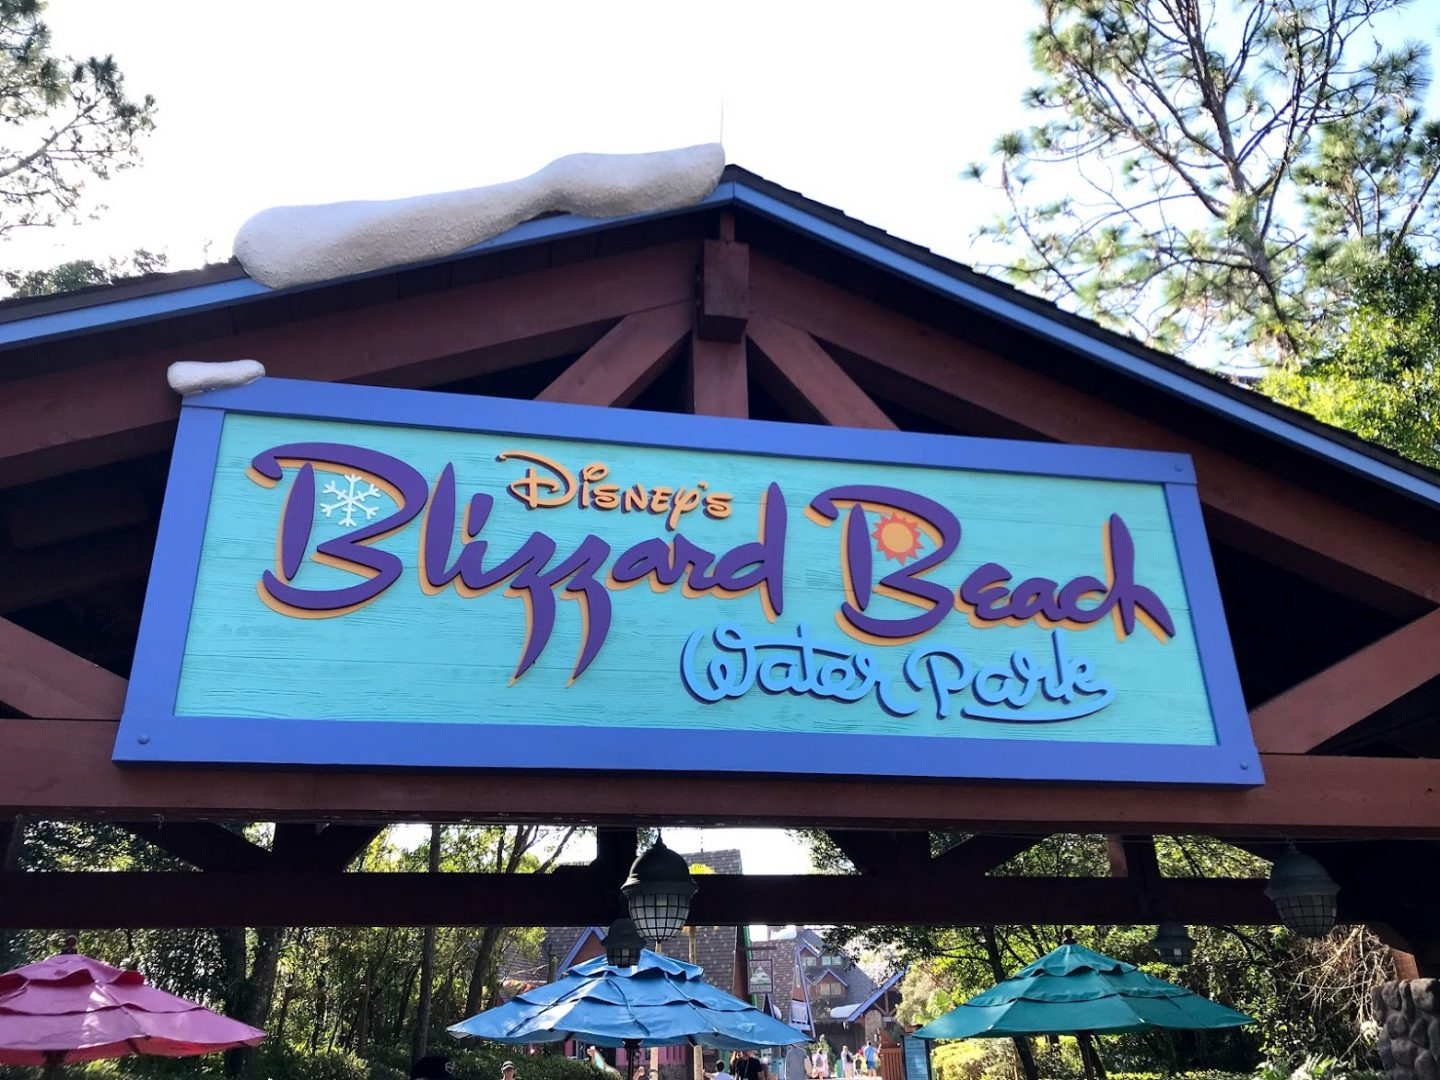 The Ultimate Guide to Walt Disney World's Blizzard Beach Water Park | Everything you need to know about visiting Walt Disney World's Blizzard Beach water park, including what to take, do, and eat at the park. | AlwaysMovingMommy.com